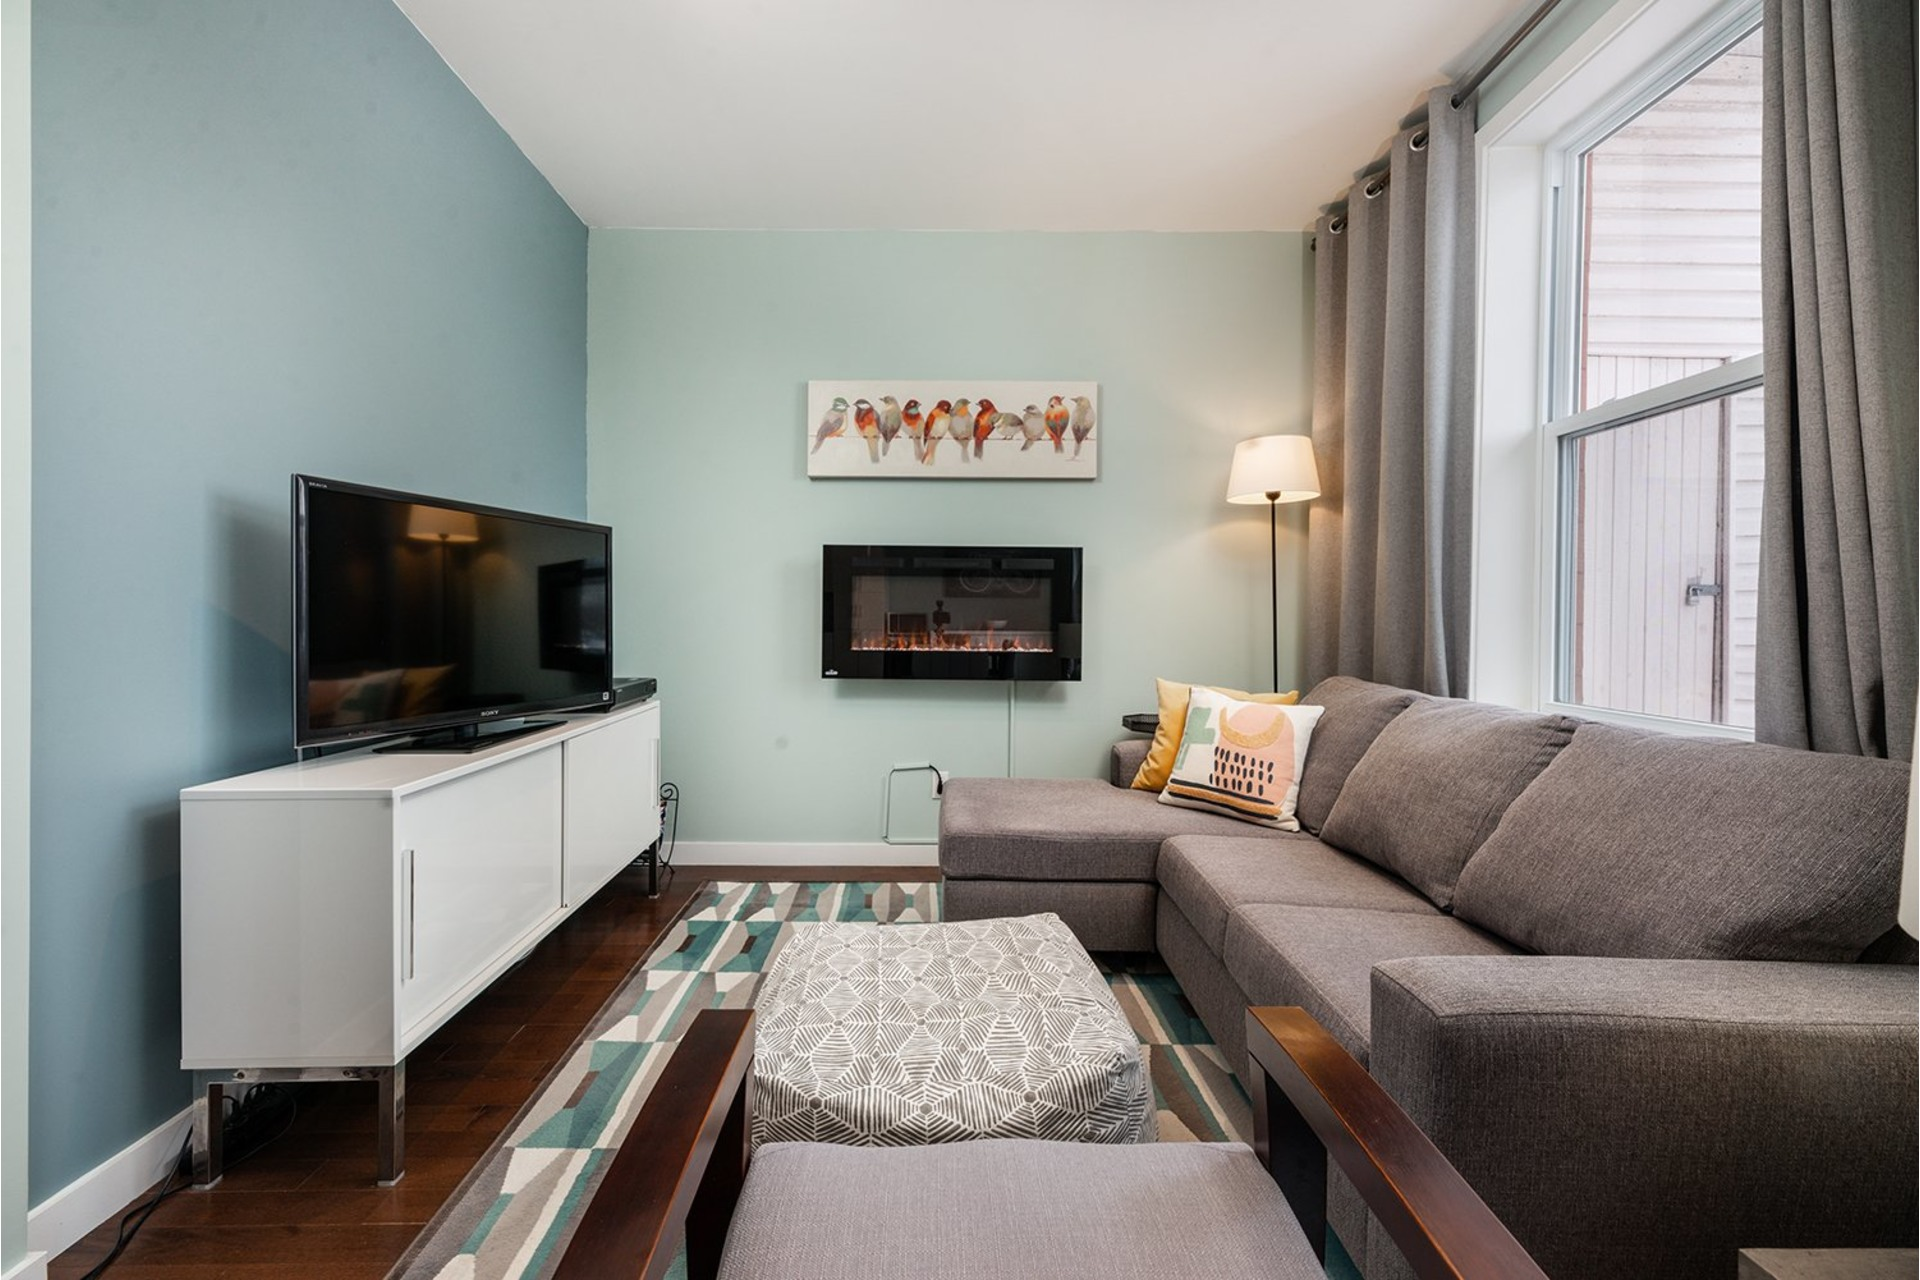 Apartment For sale LaSalle Montréal  - 5 rooms